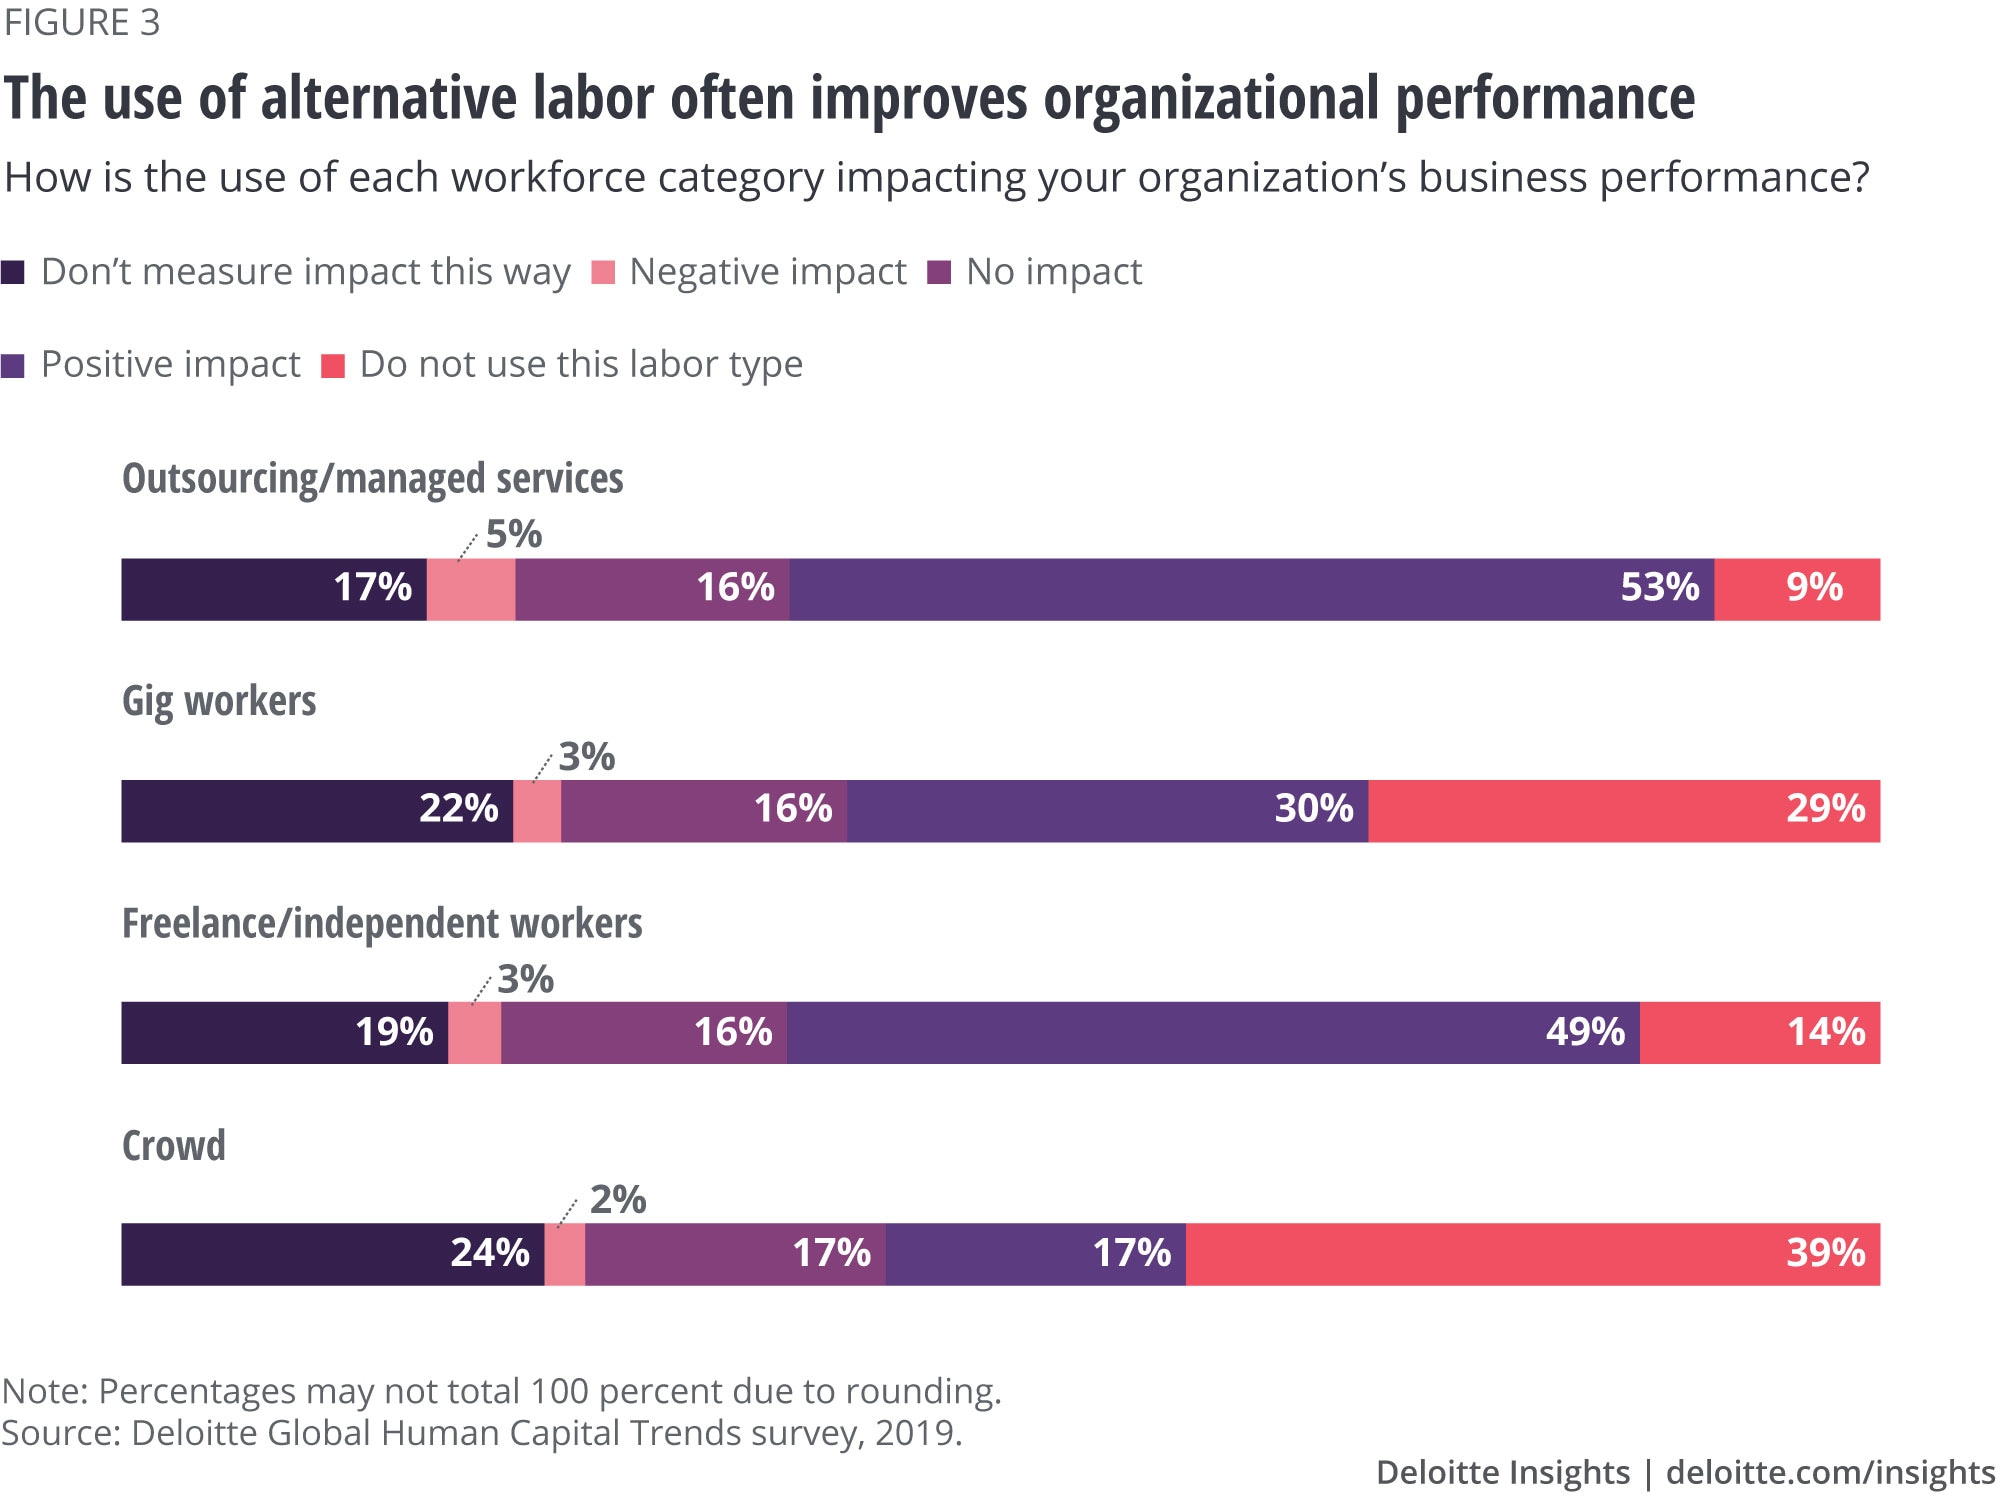 The use of alternative labor often improves organizational performance